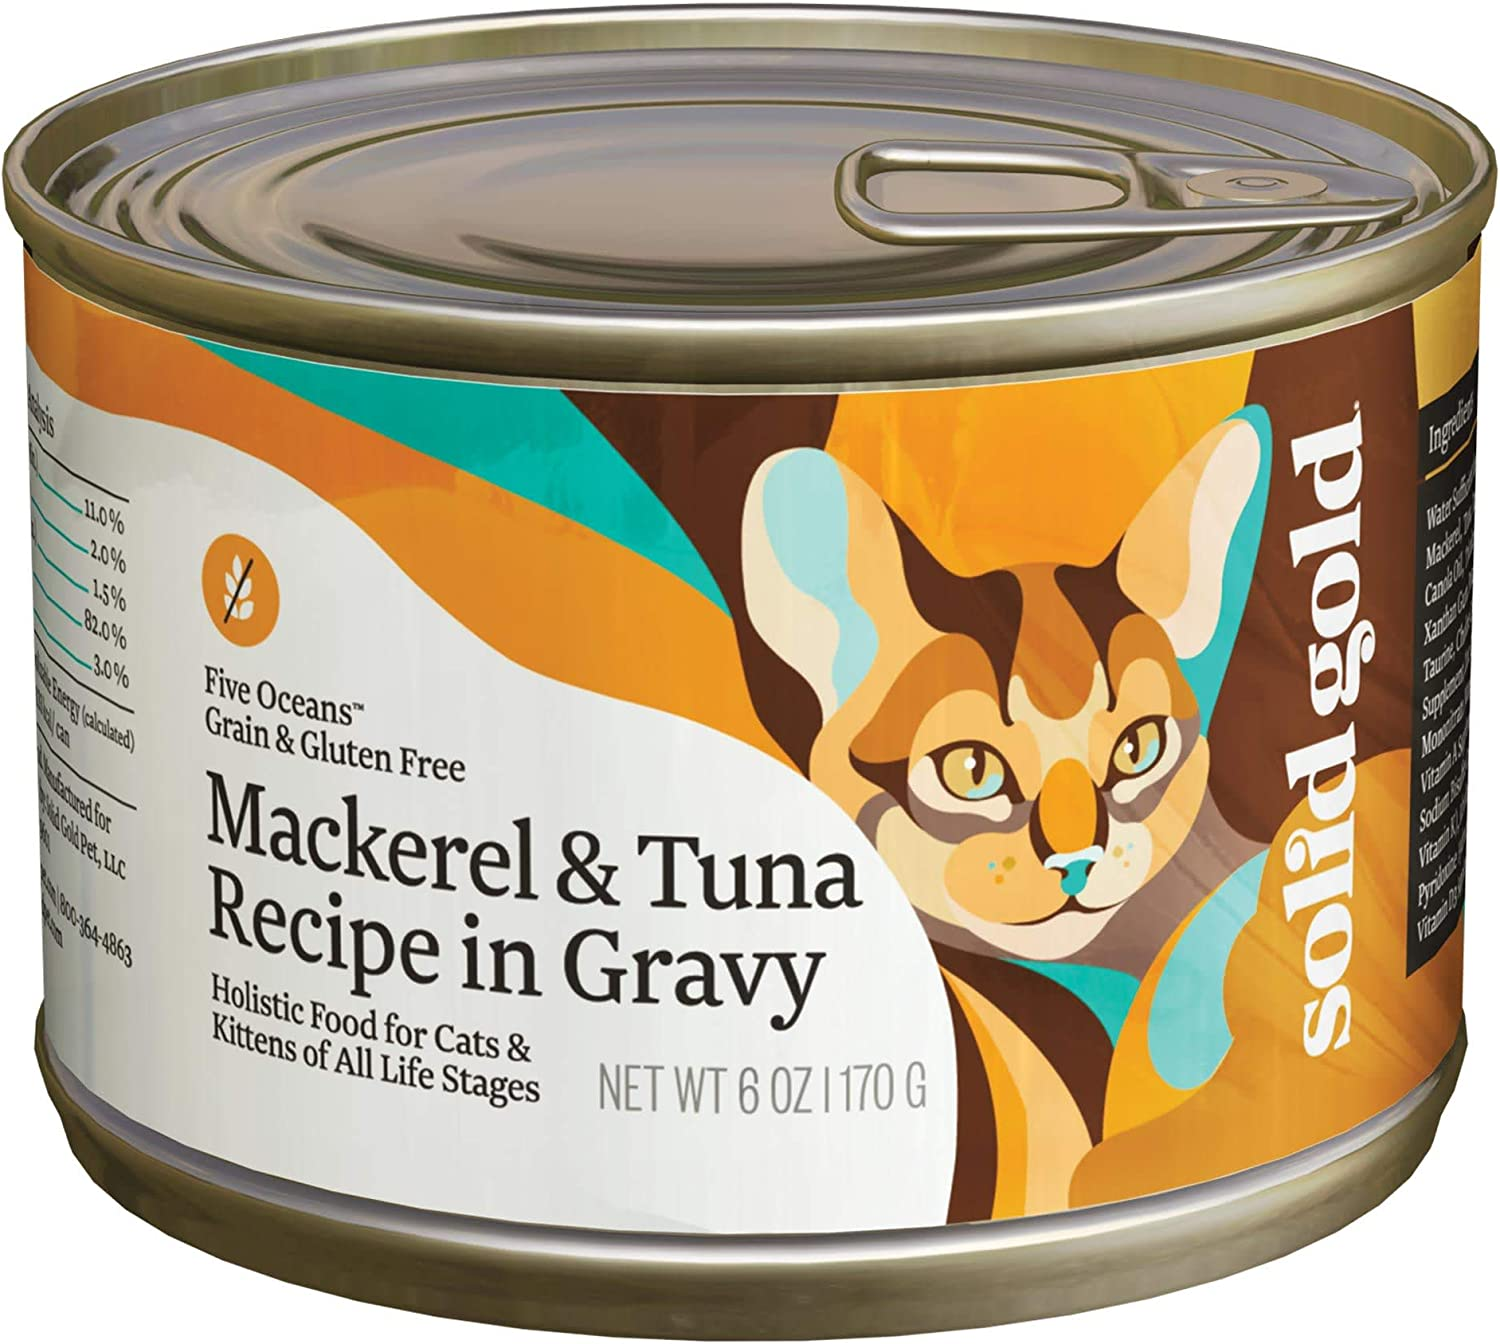 8. Solid Gold Five Oceans Canned Cat Food with Mackerel & Tuna Recipe in Gravy